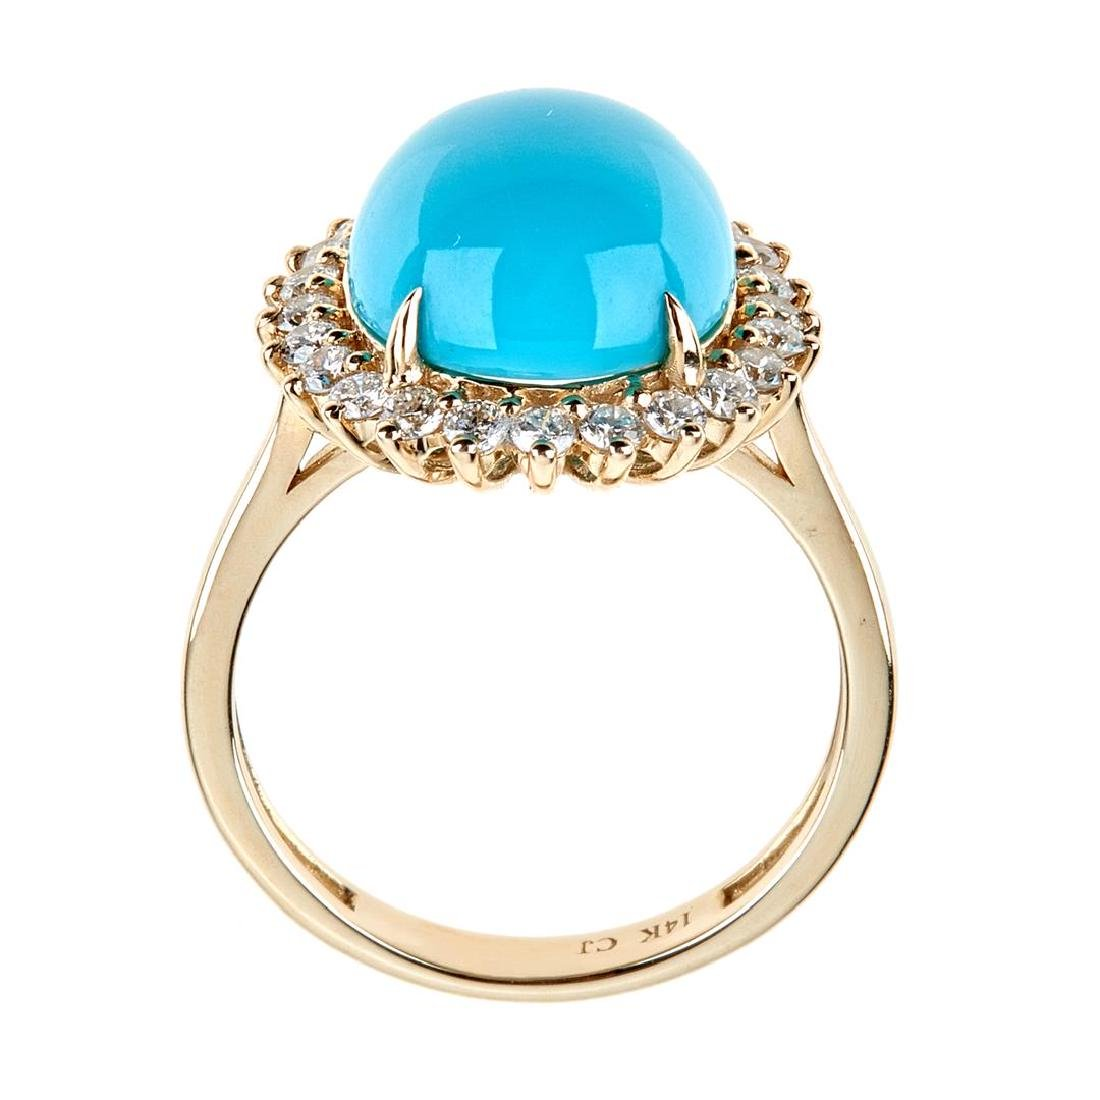 5.18 ctw Turquoise and Diamond Ring - 14KT Yellow Gold - 3